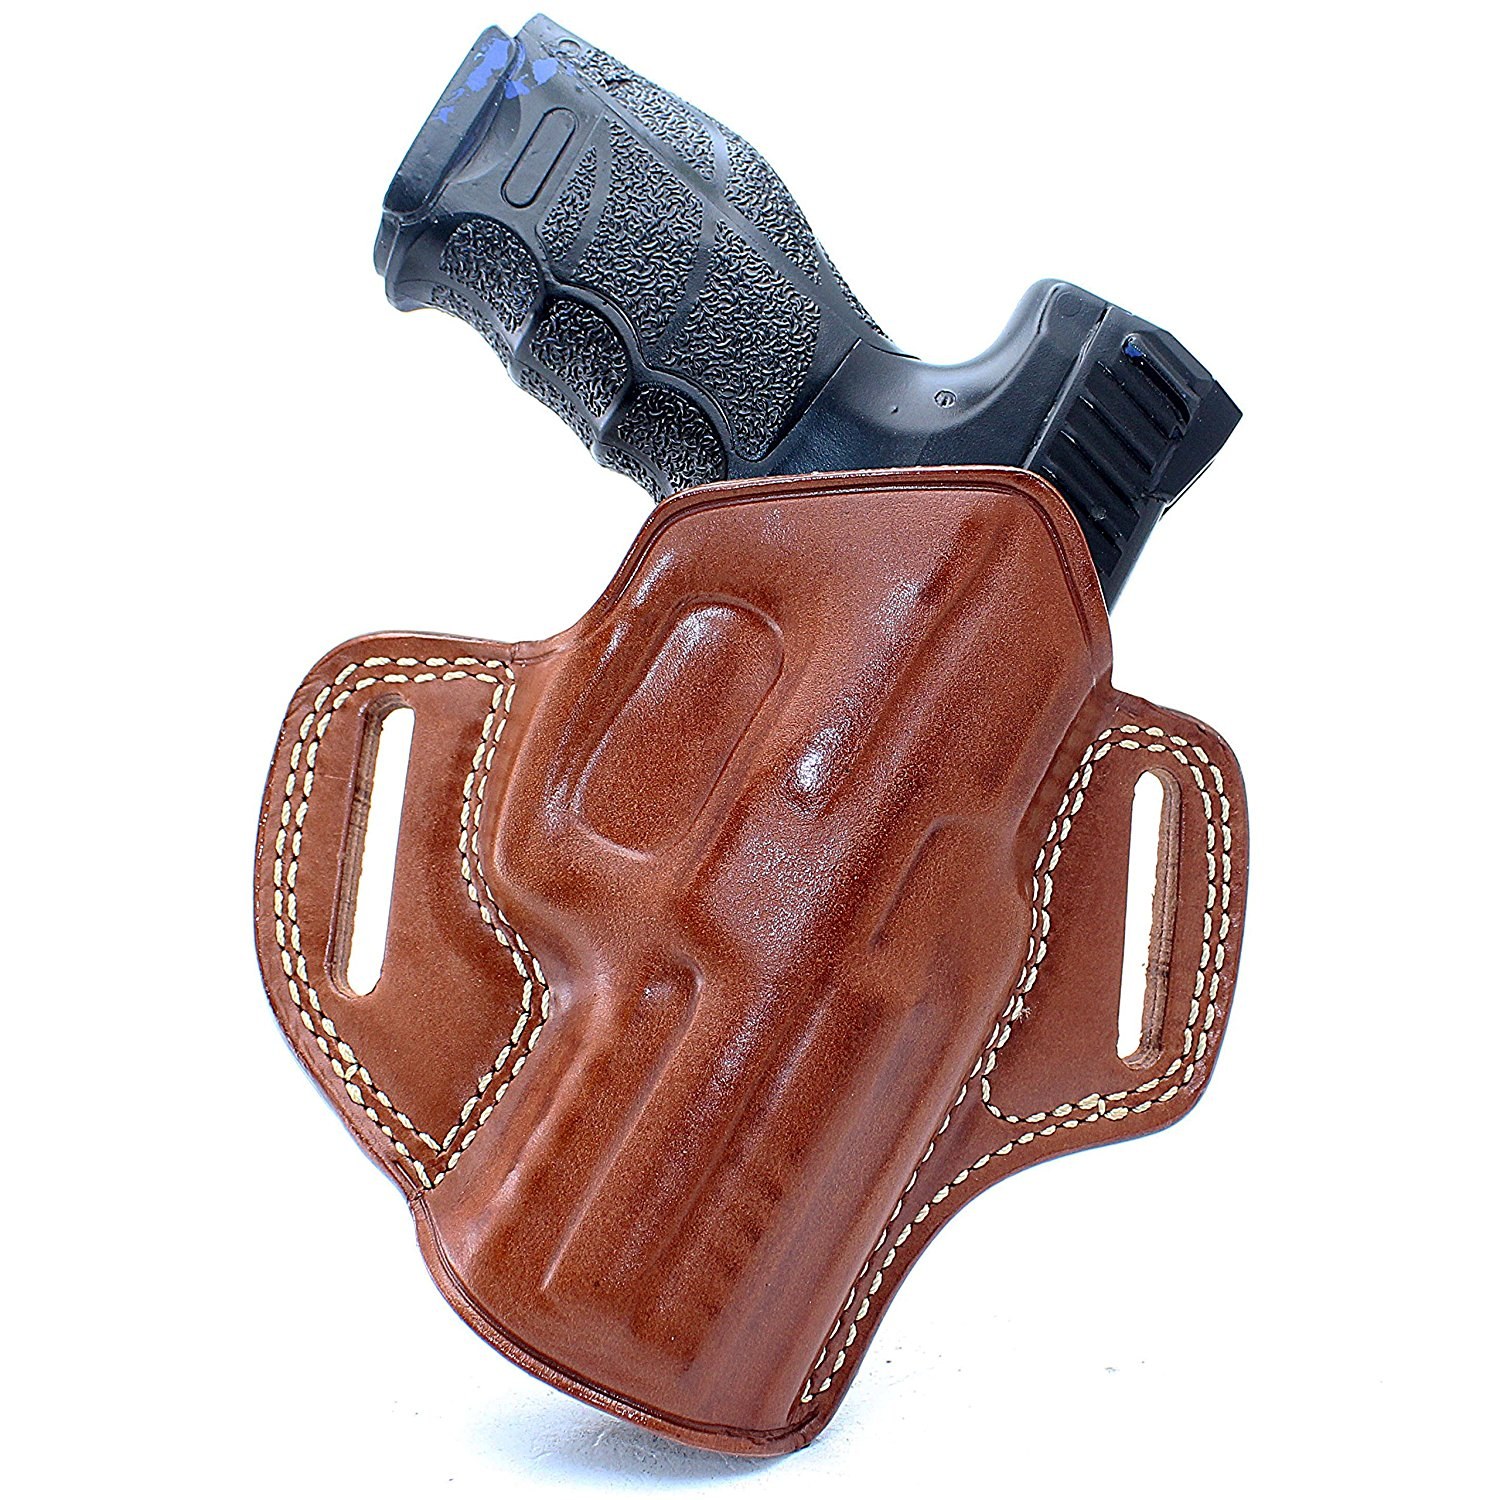 Cheap Hk P30 Duty Holster, find Hk P30 Duty Holster deals on